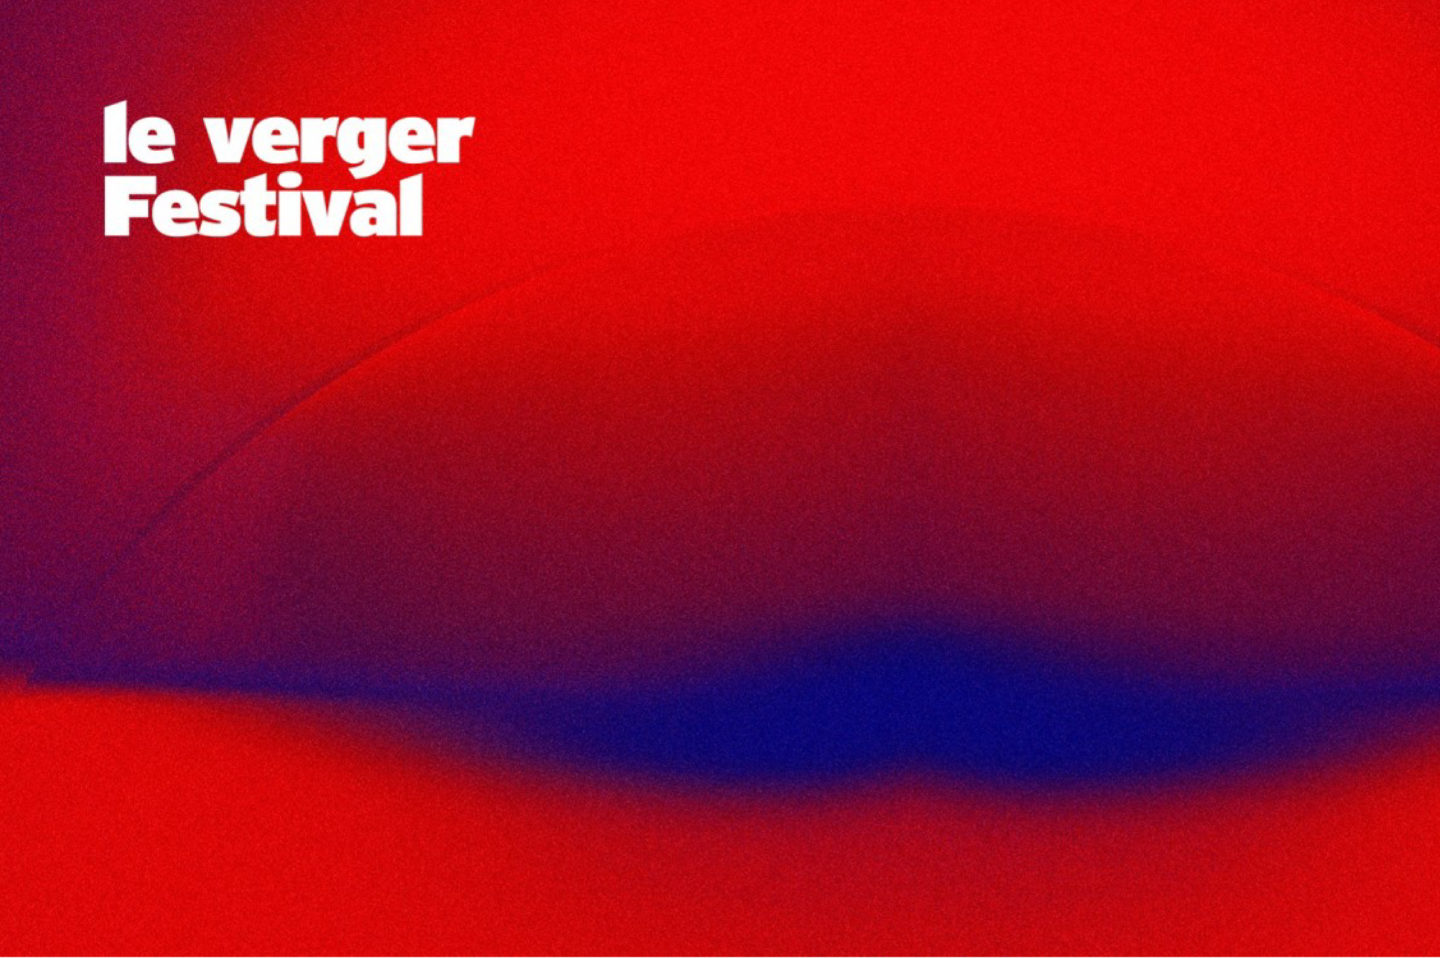 Le Verger Festival by TPLT